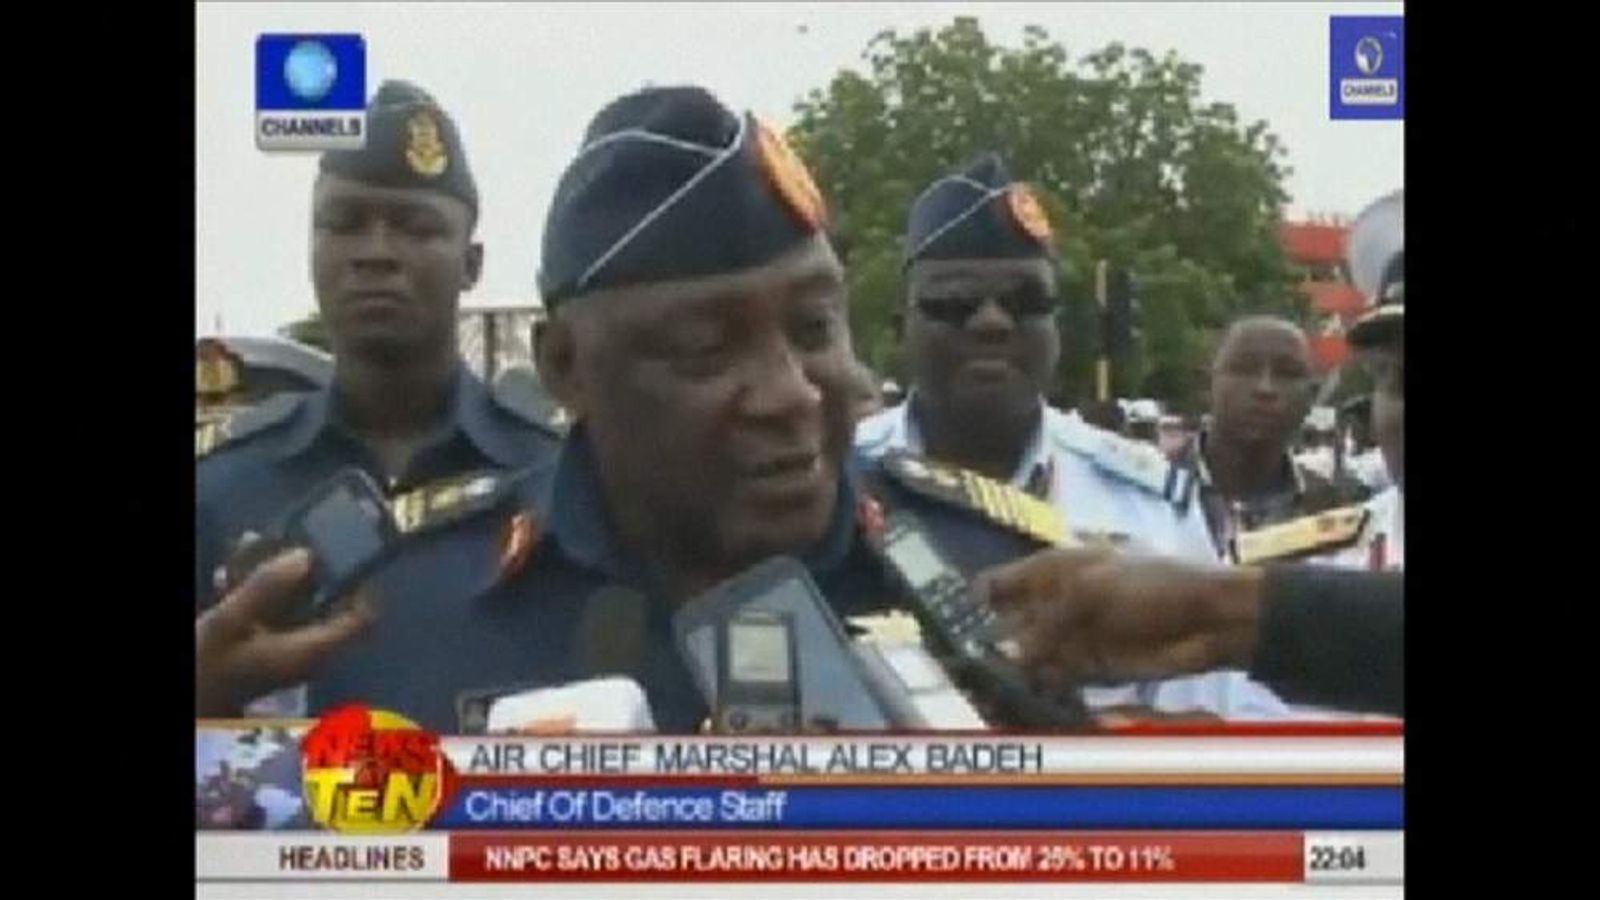 Nigerian Air Chief Marshal Alex Badeh